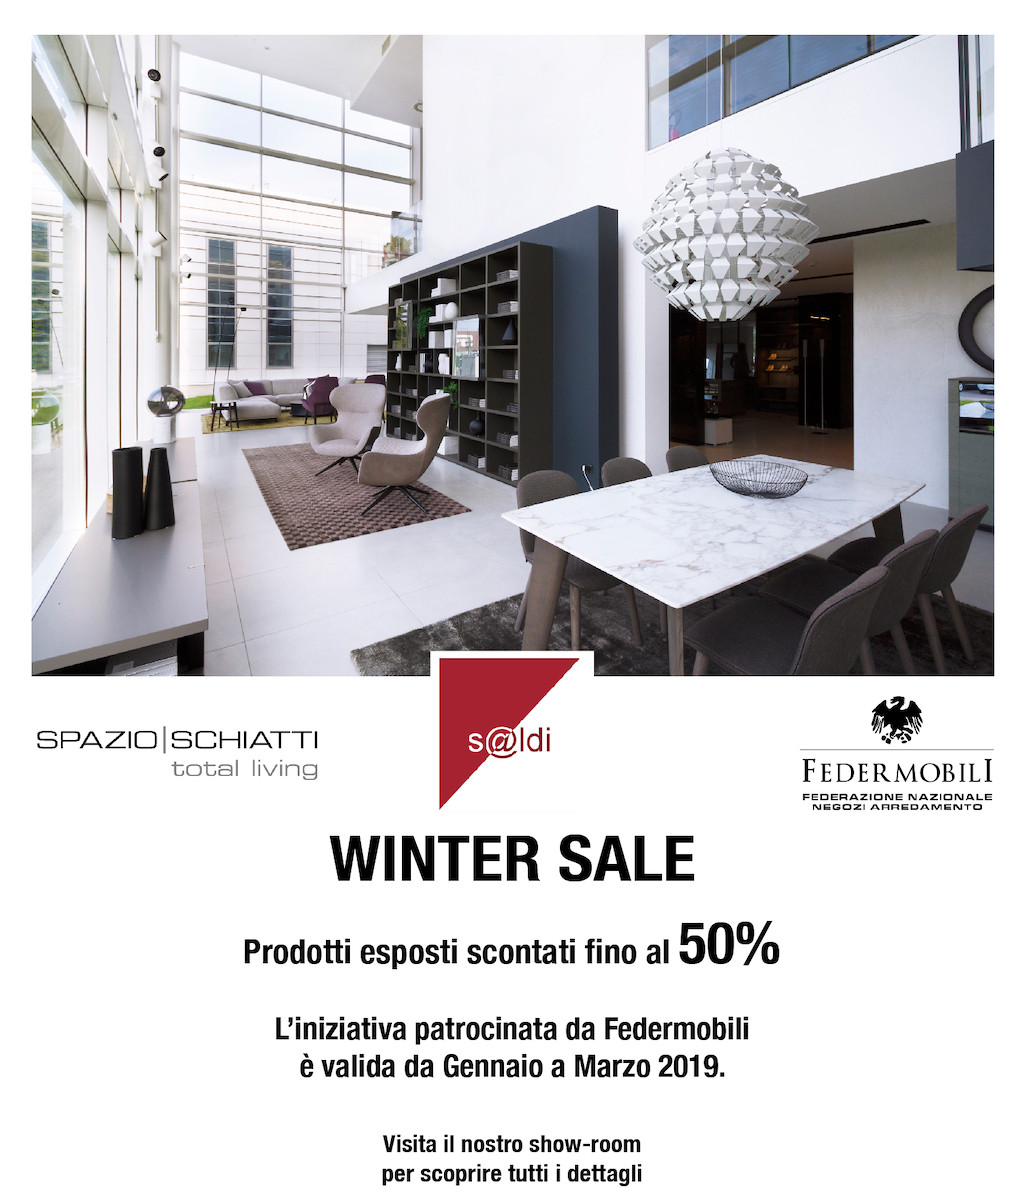 winter sales with Federmobili